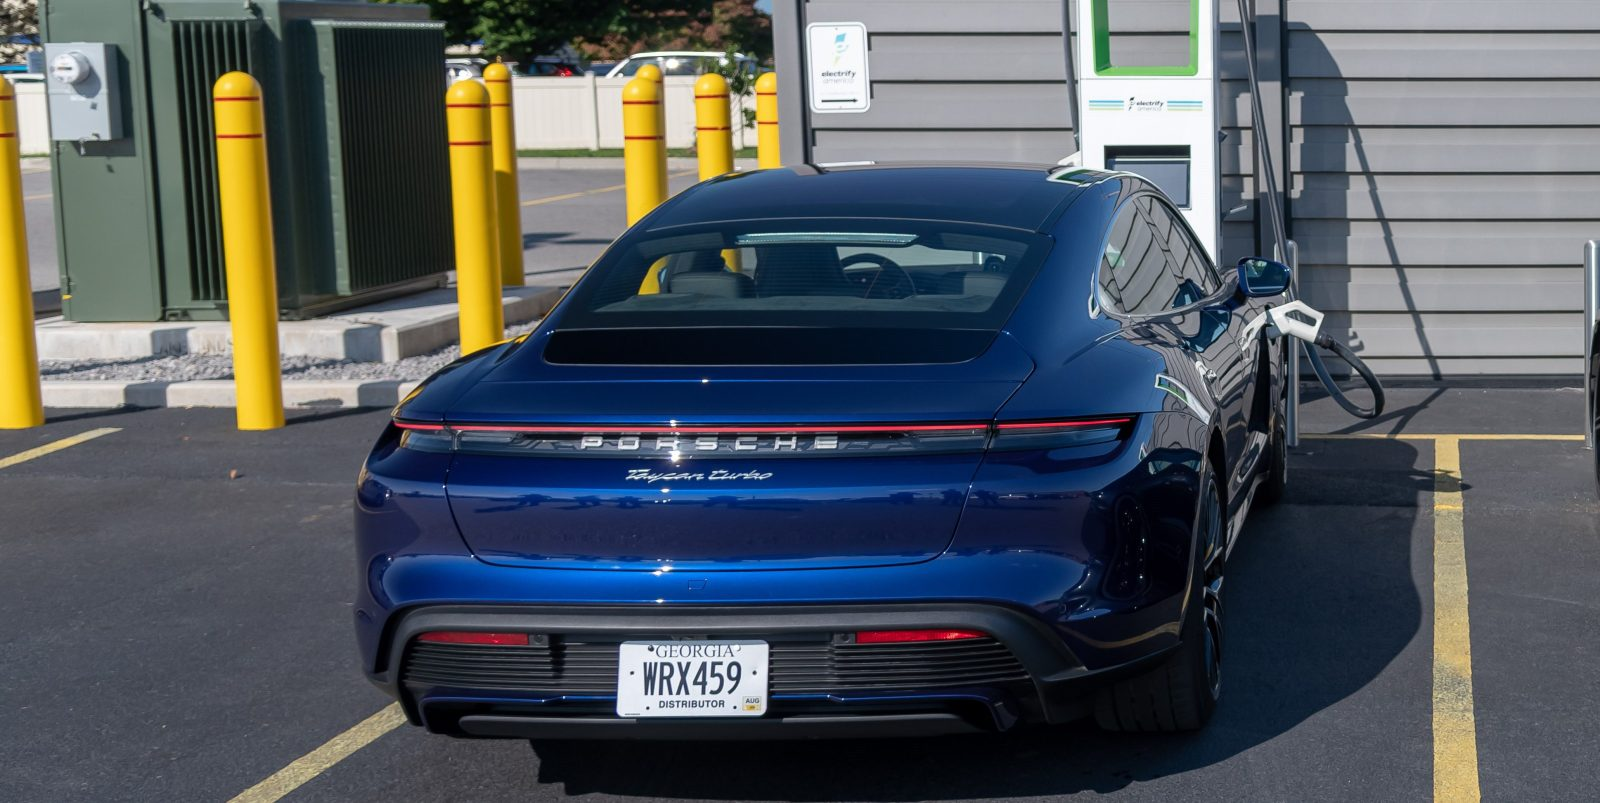 Porsche Taycan first car to charge at 270 kW on Electrify America's network